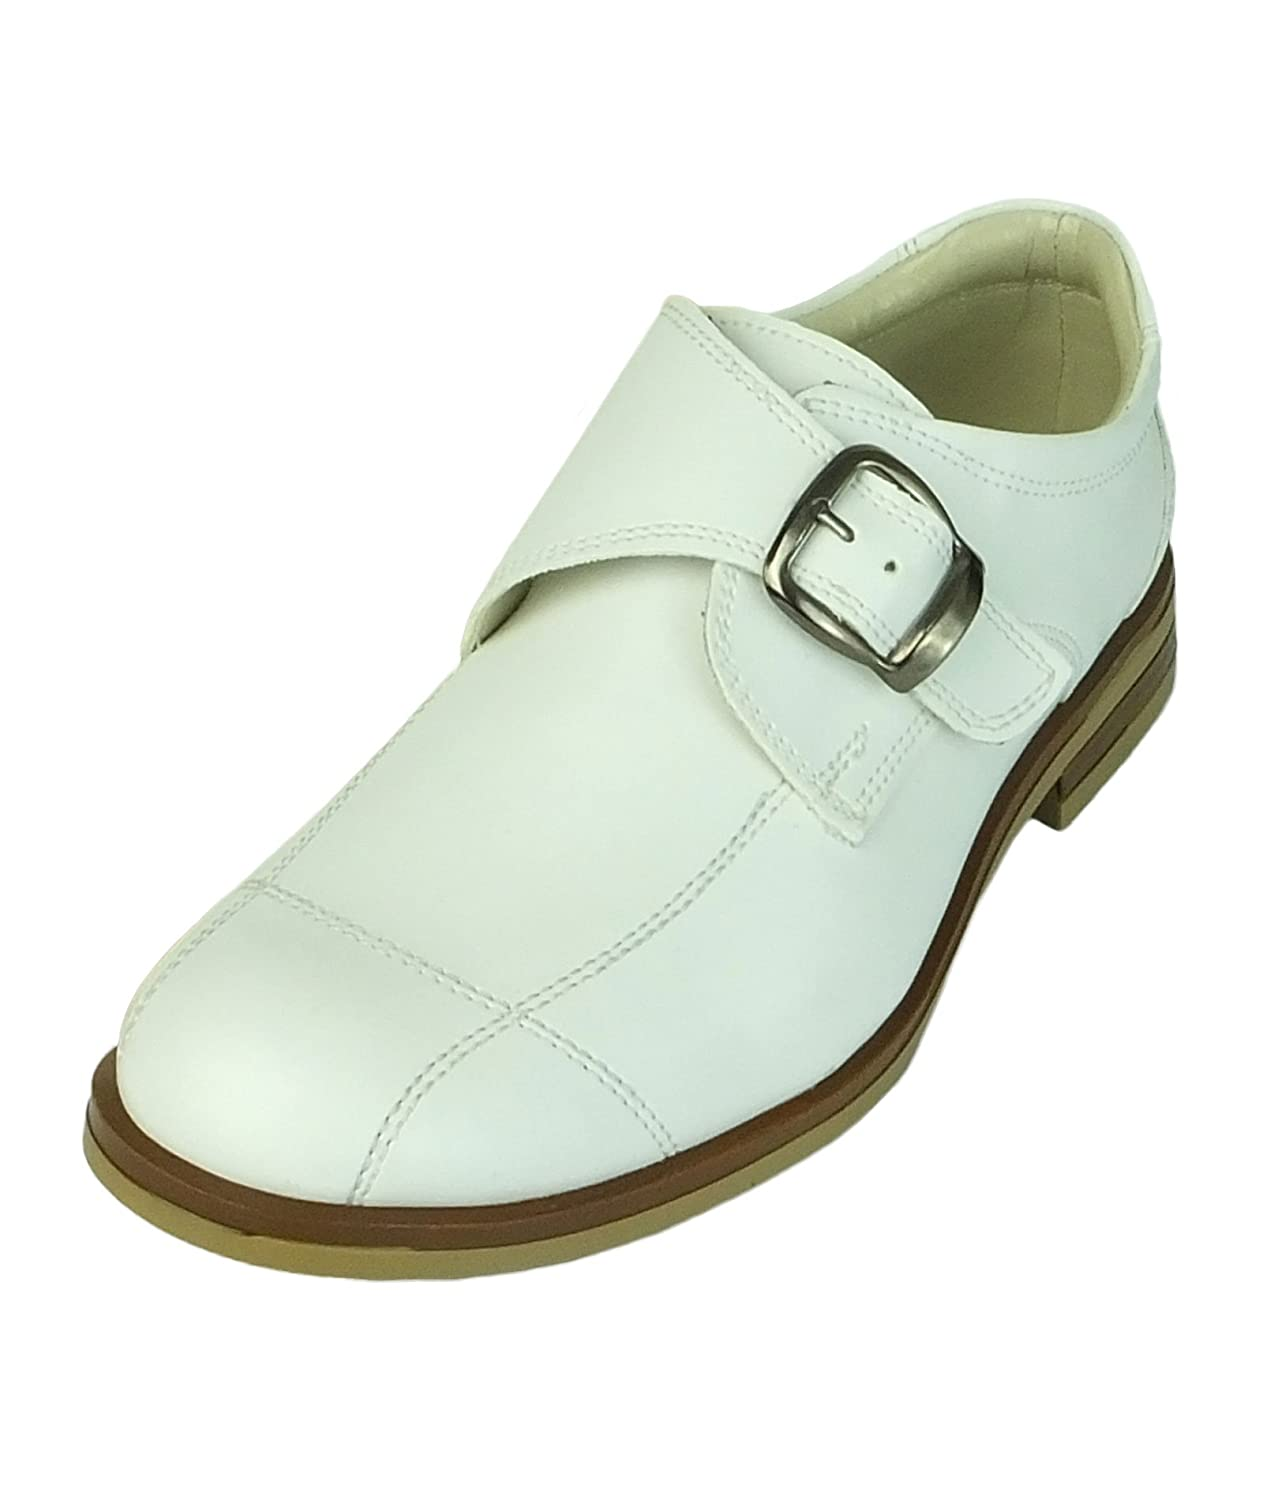 Boys Leather Buckle Fastening Monk Style White Communion Shoes